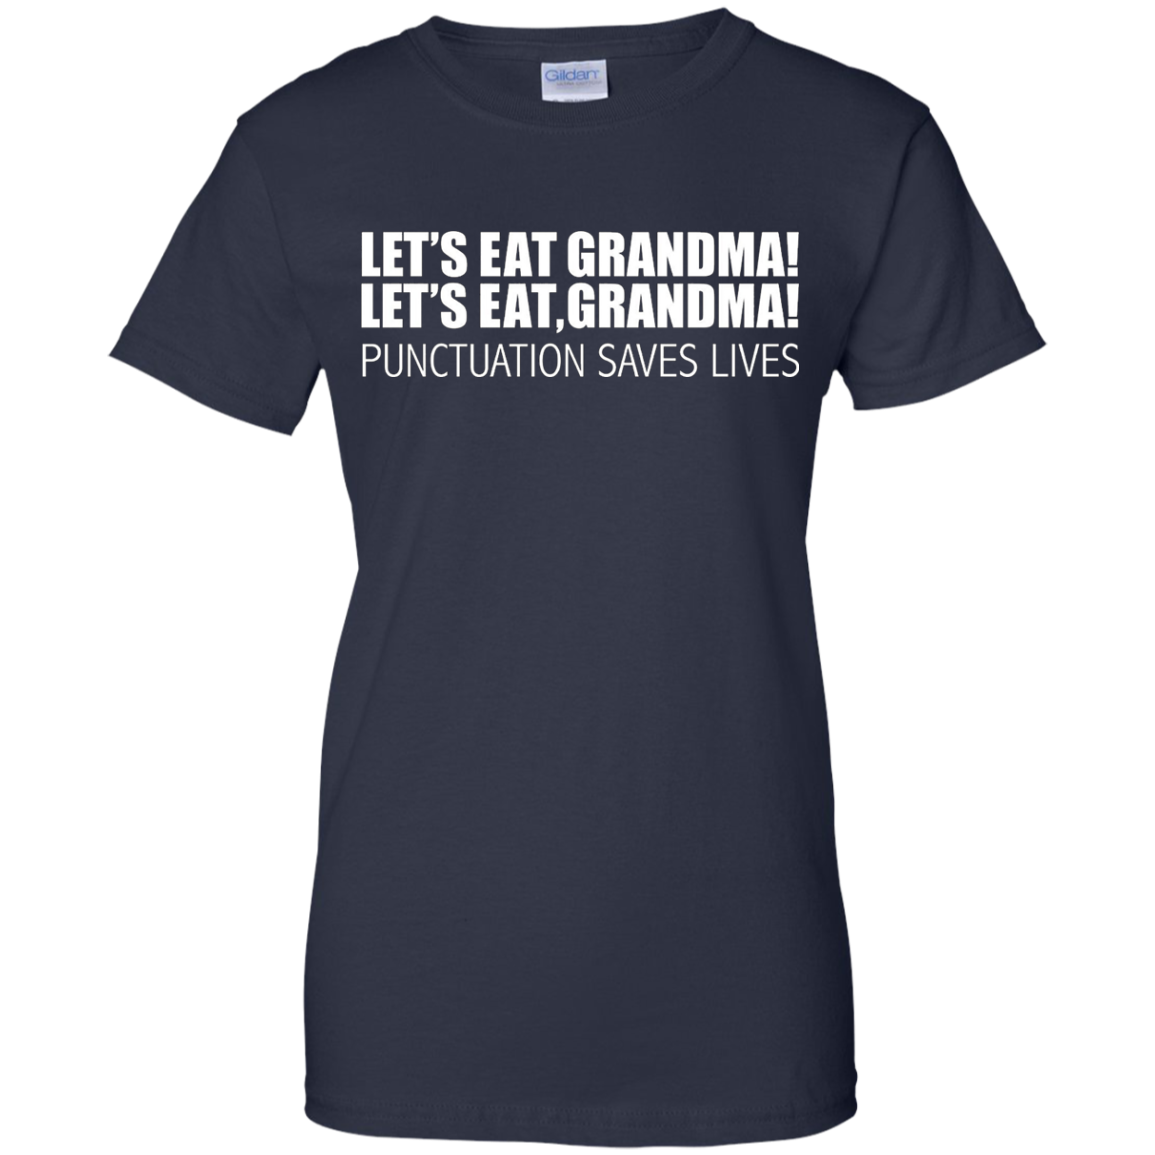 Let's Eat Grandma Punctuation Saves Lives Funny T-shirt